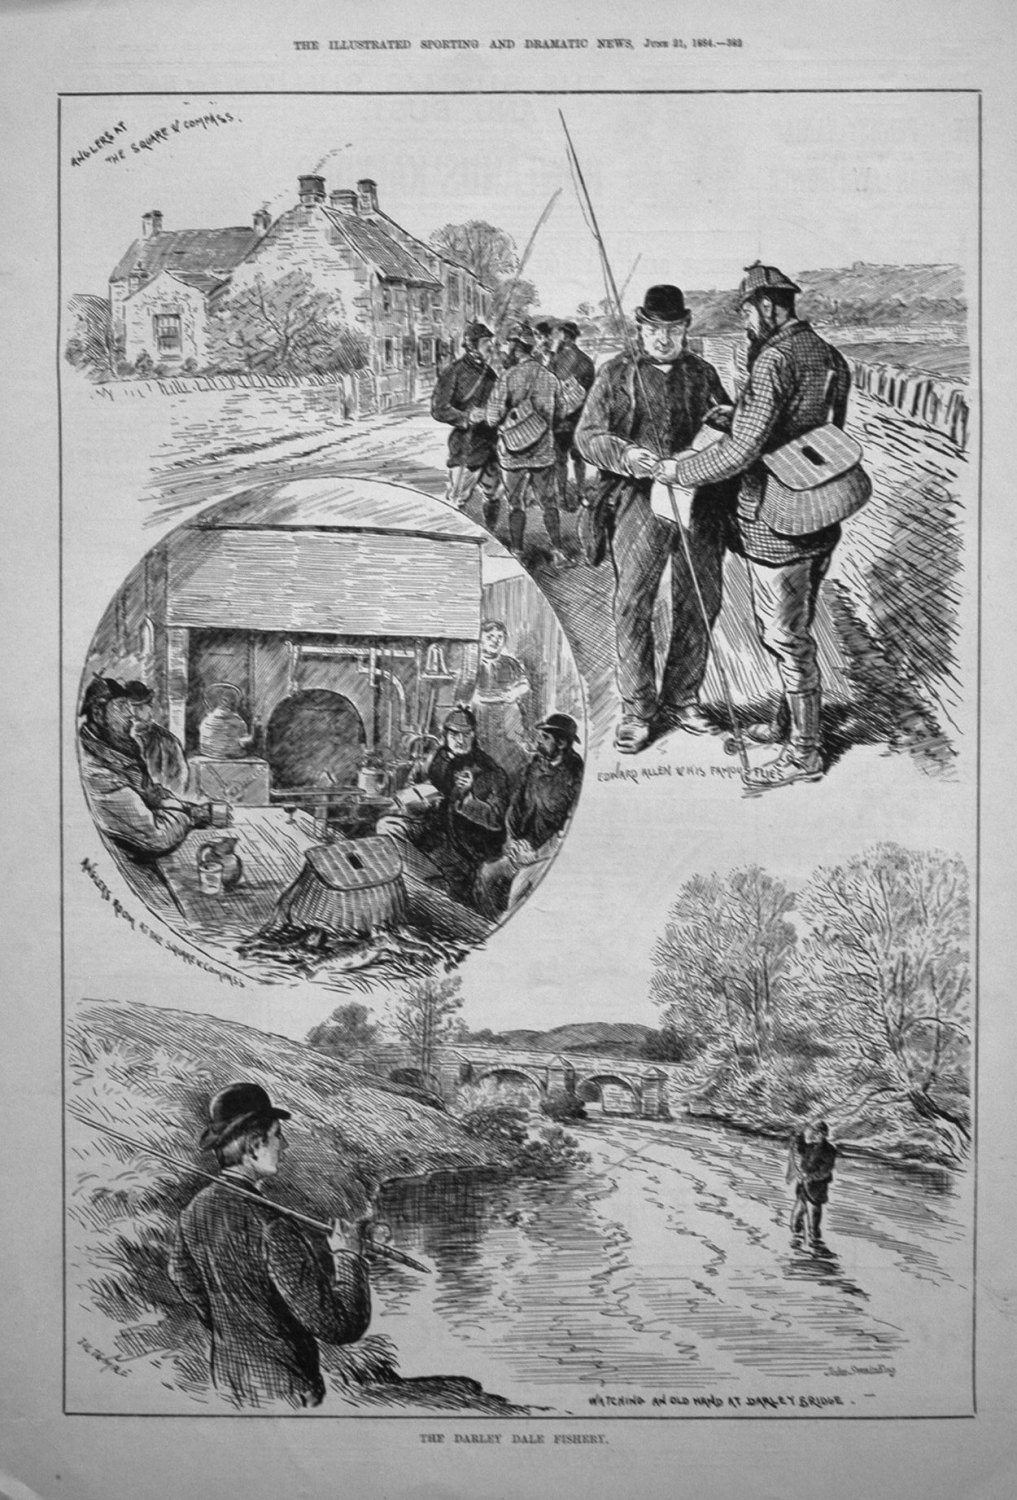 The Darley Dale Fishery. 1884